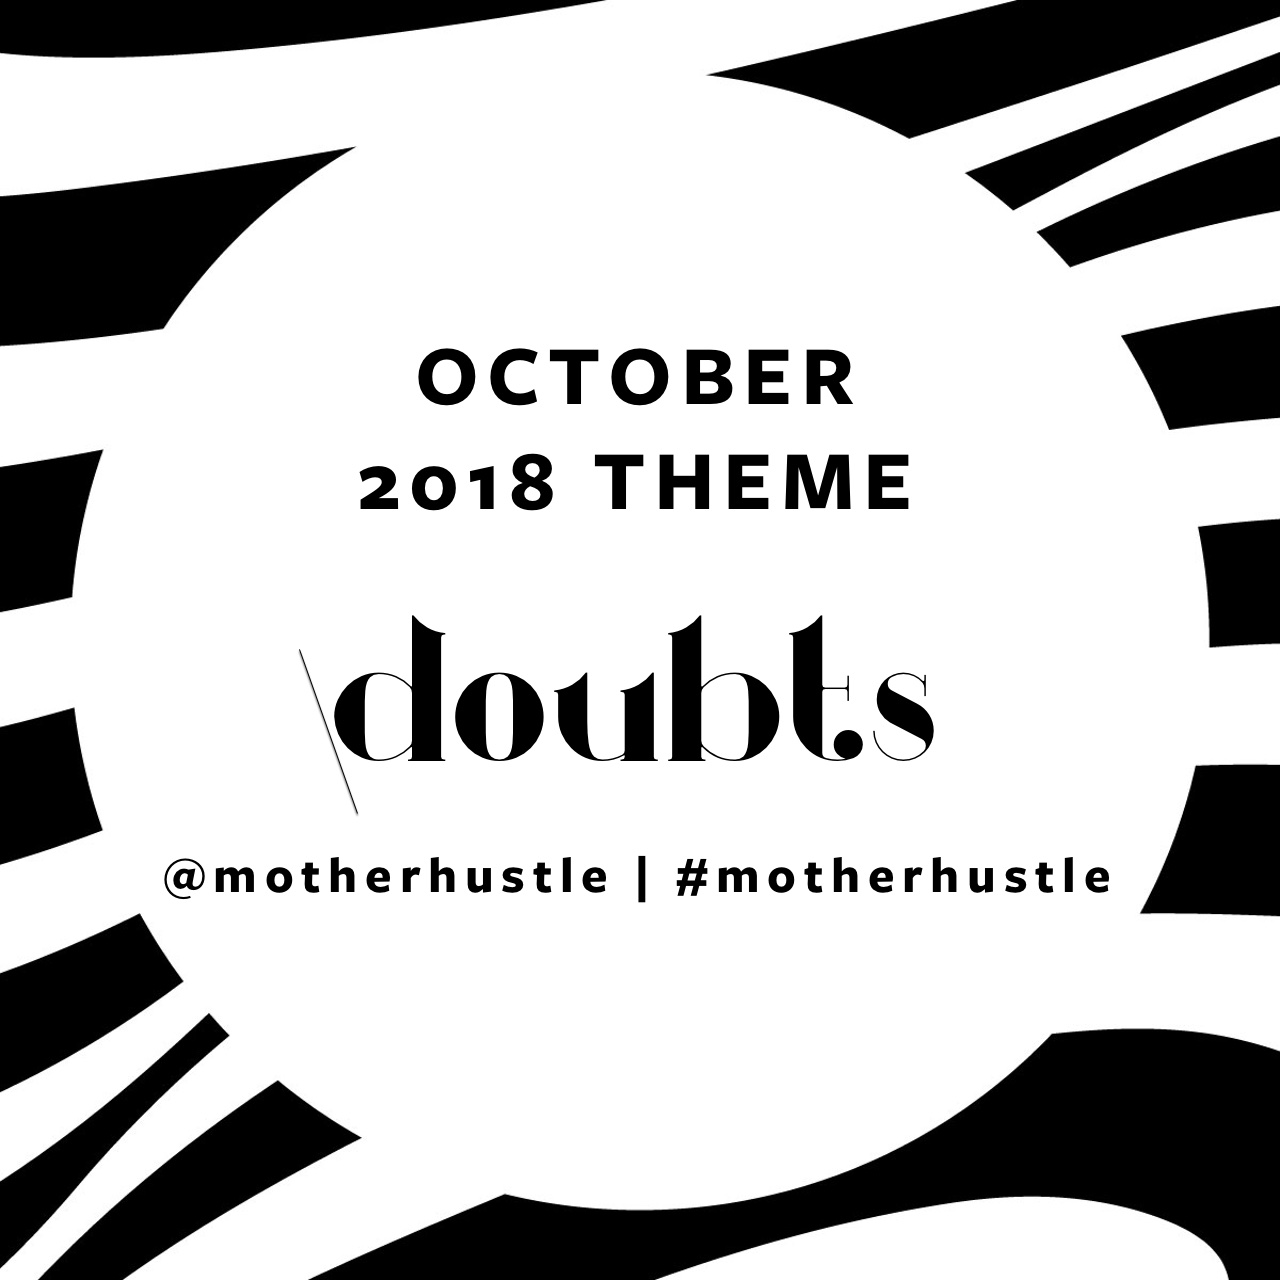 MotherHustle Theme October 2018 - Doubts